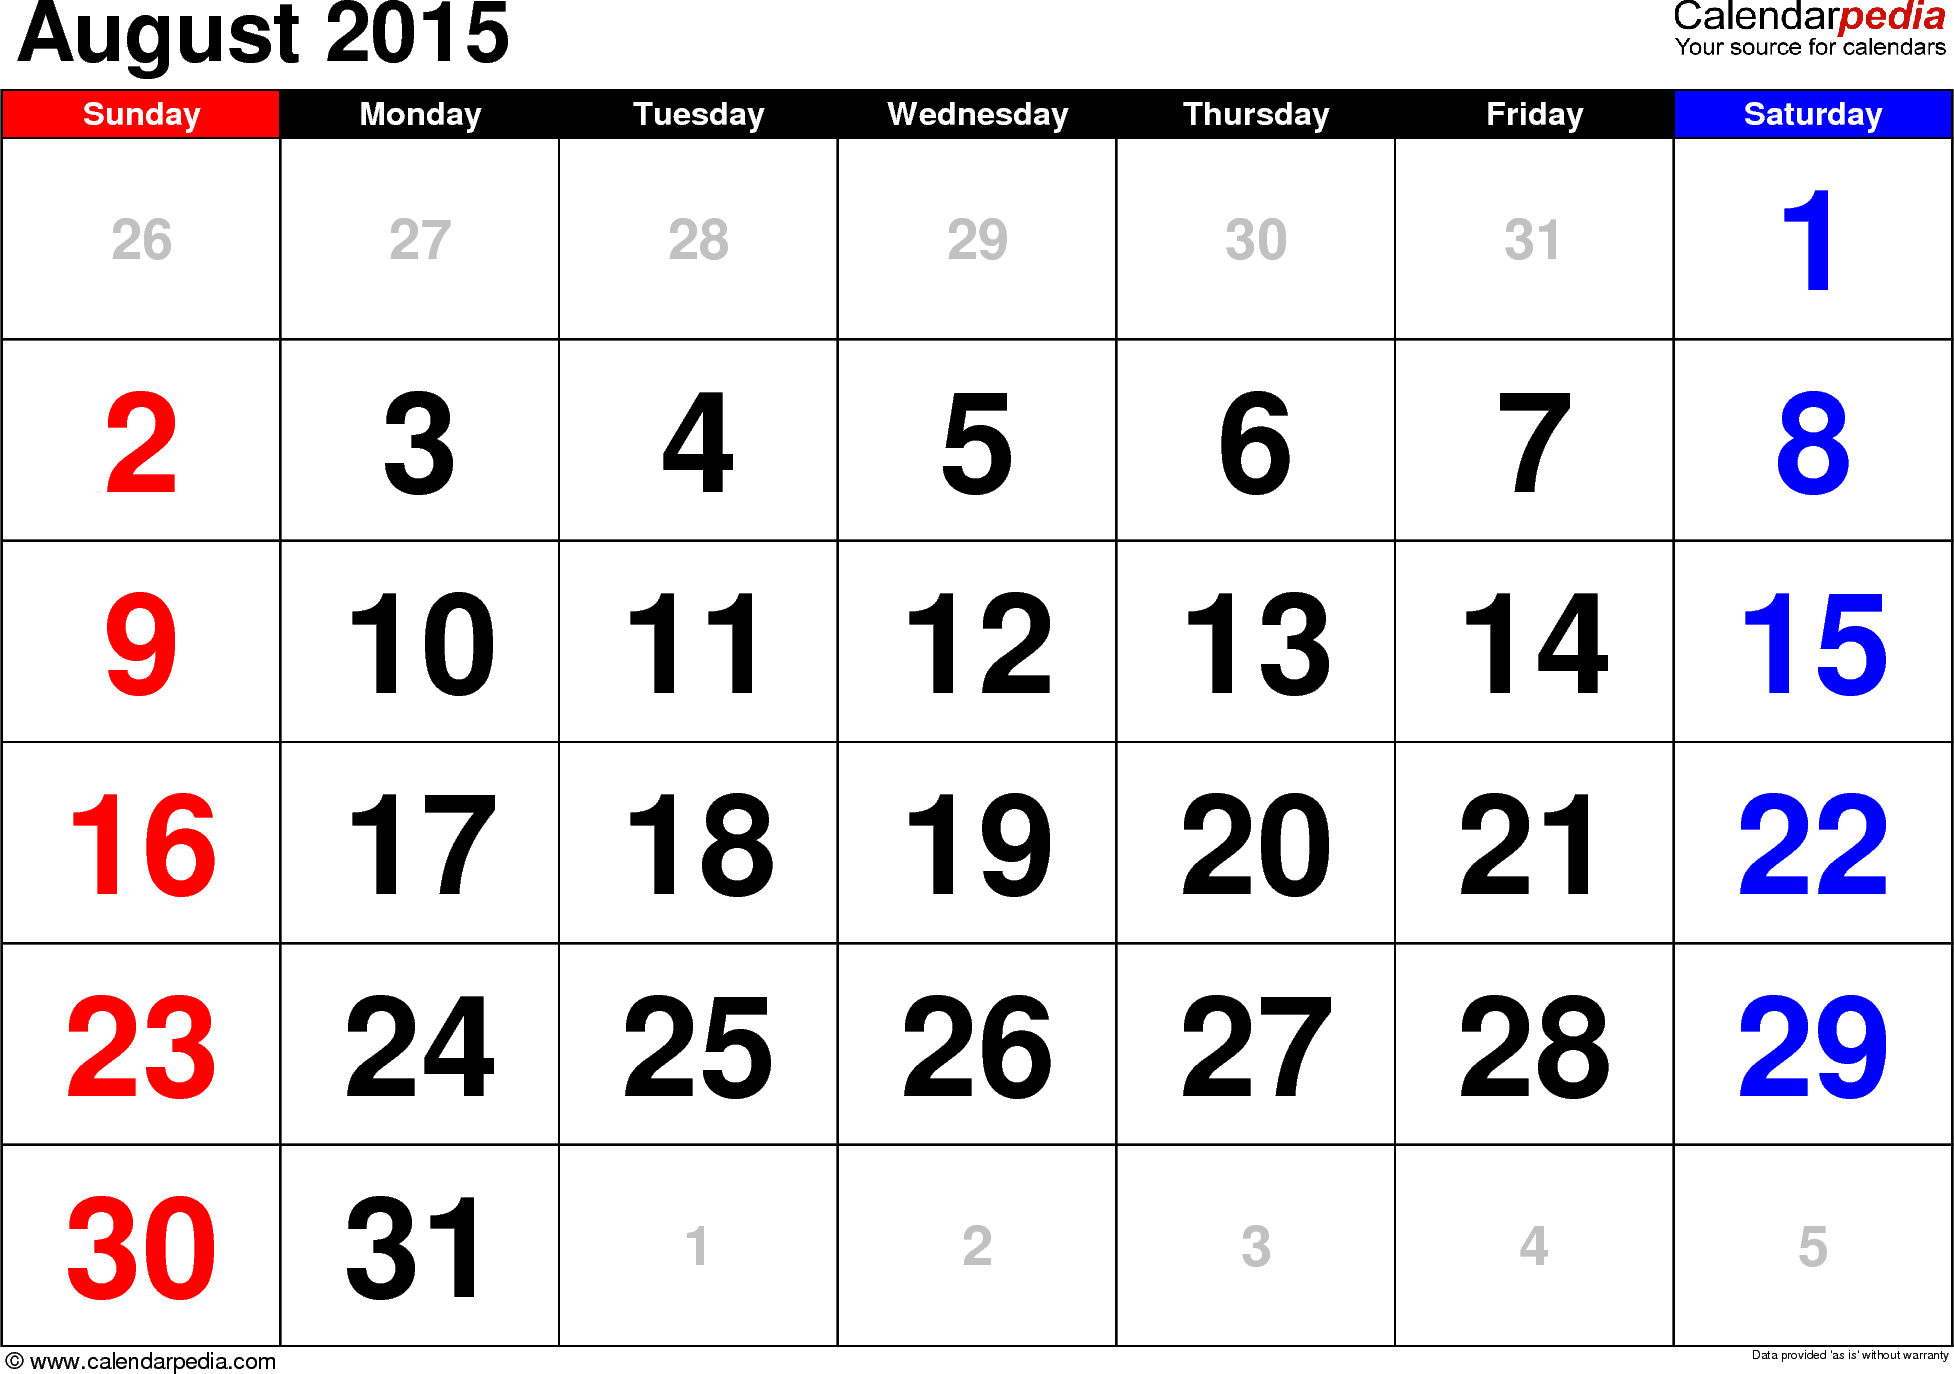 August 2015 calendar, landscape orientation, large numerals, available as printable templates for Word, Excel and PDF